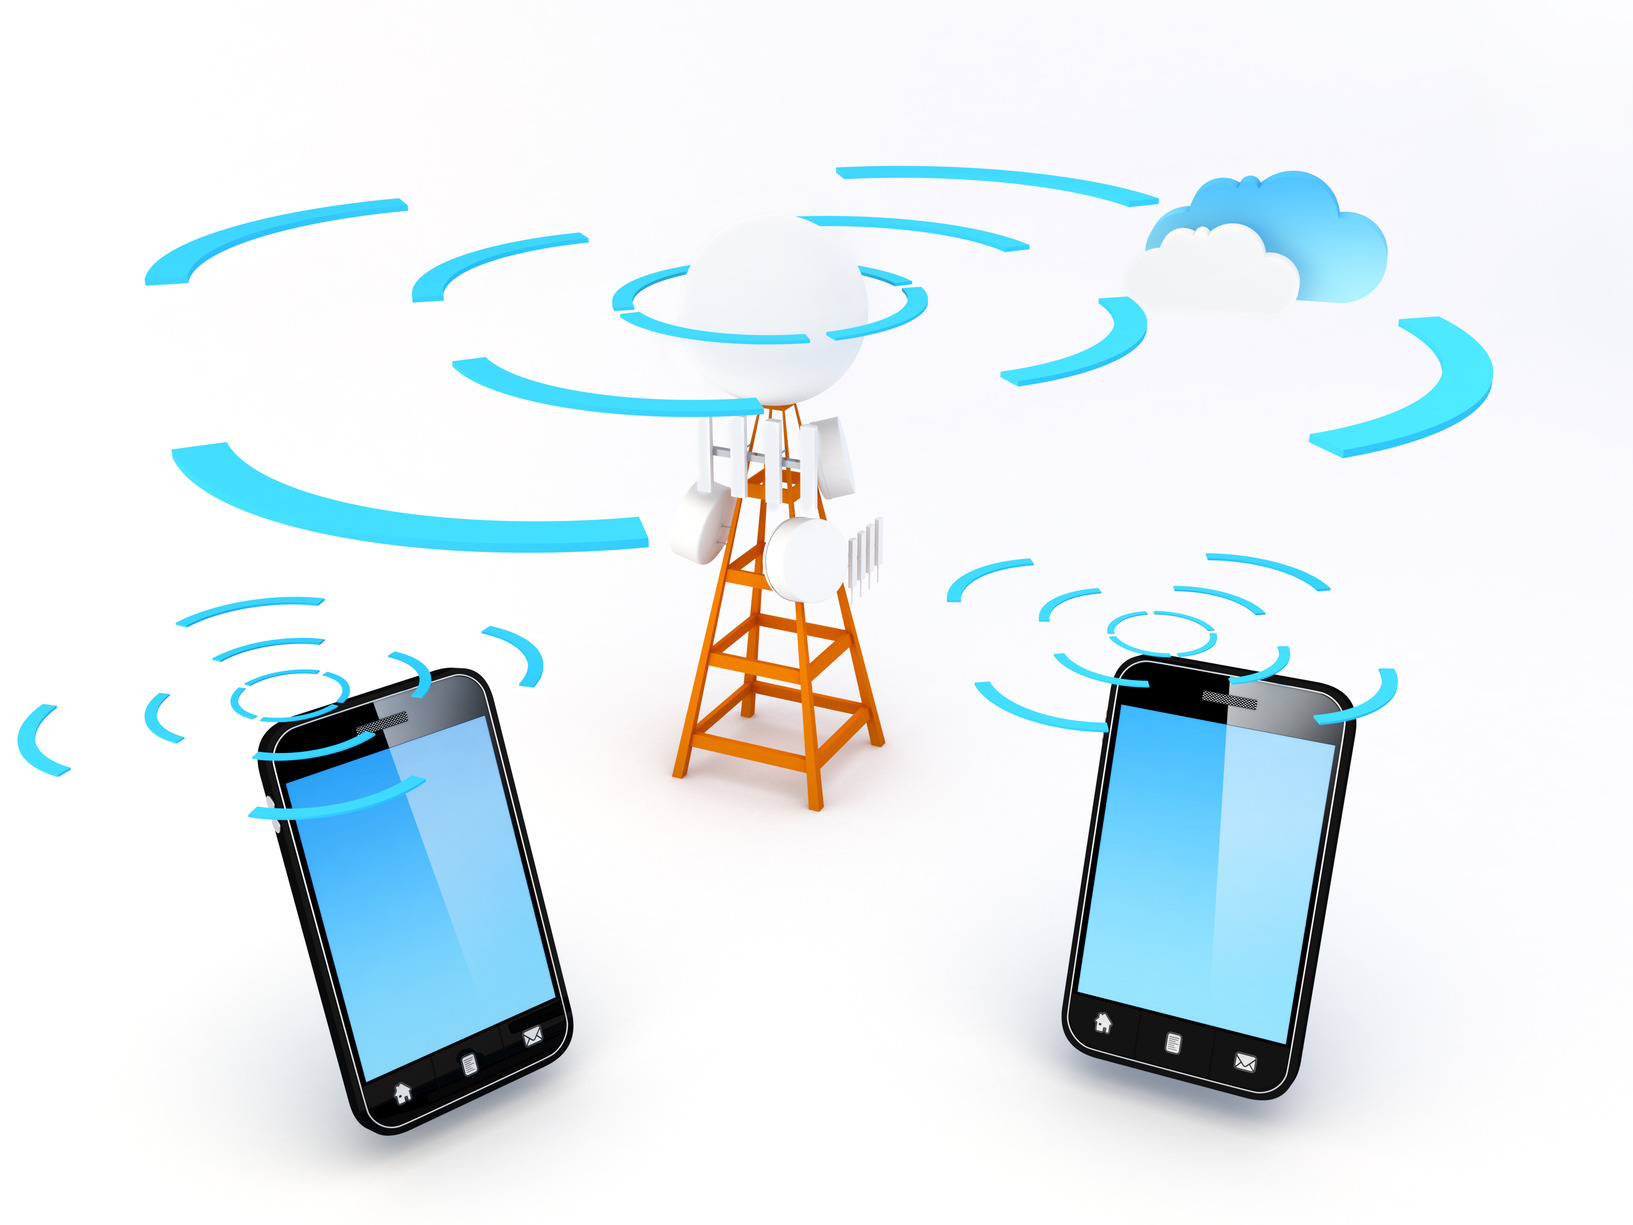 cellular services providers